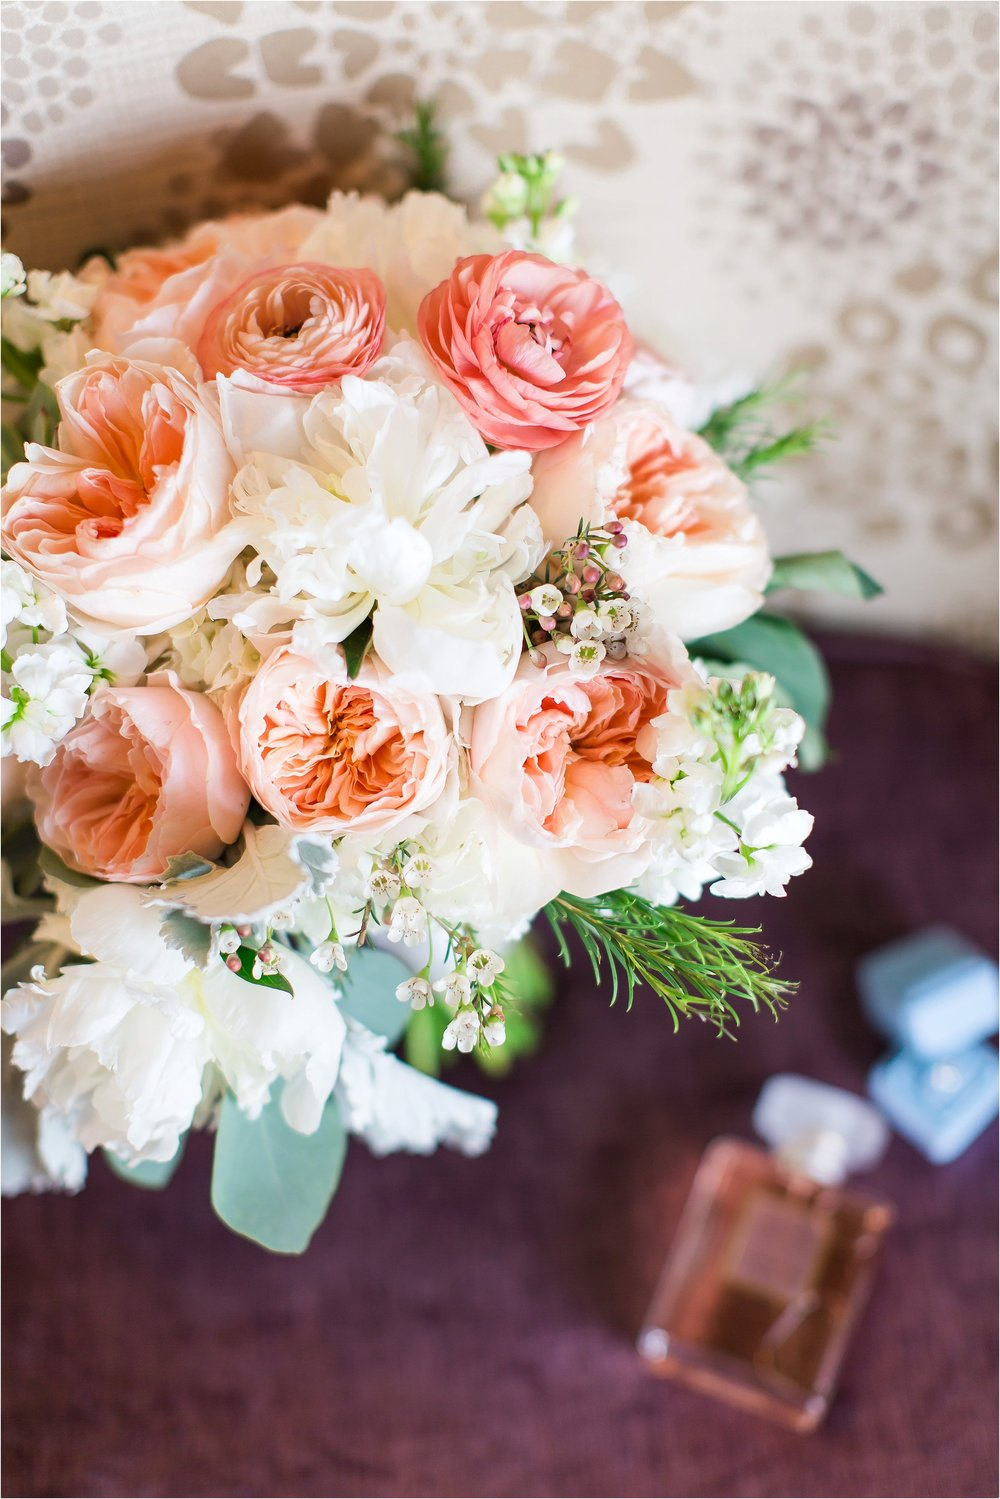 Peach garden rose and white peony bridal bouquet with ranunculus at Wyndham Grand Resort at Bonnet Creek wedding